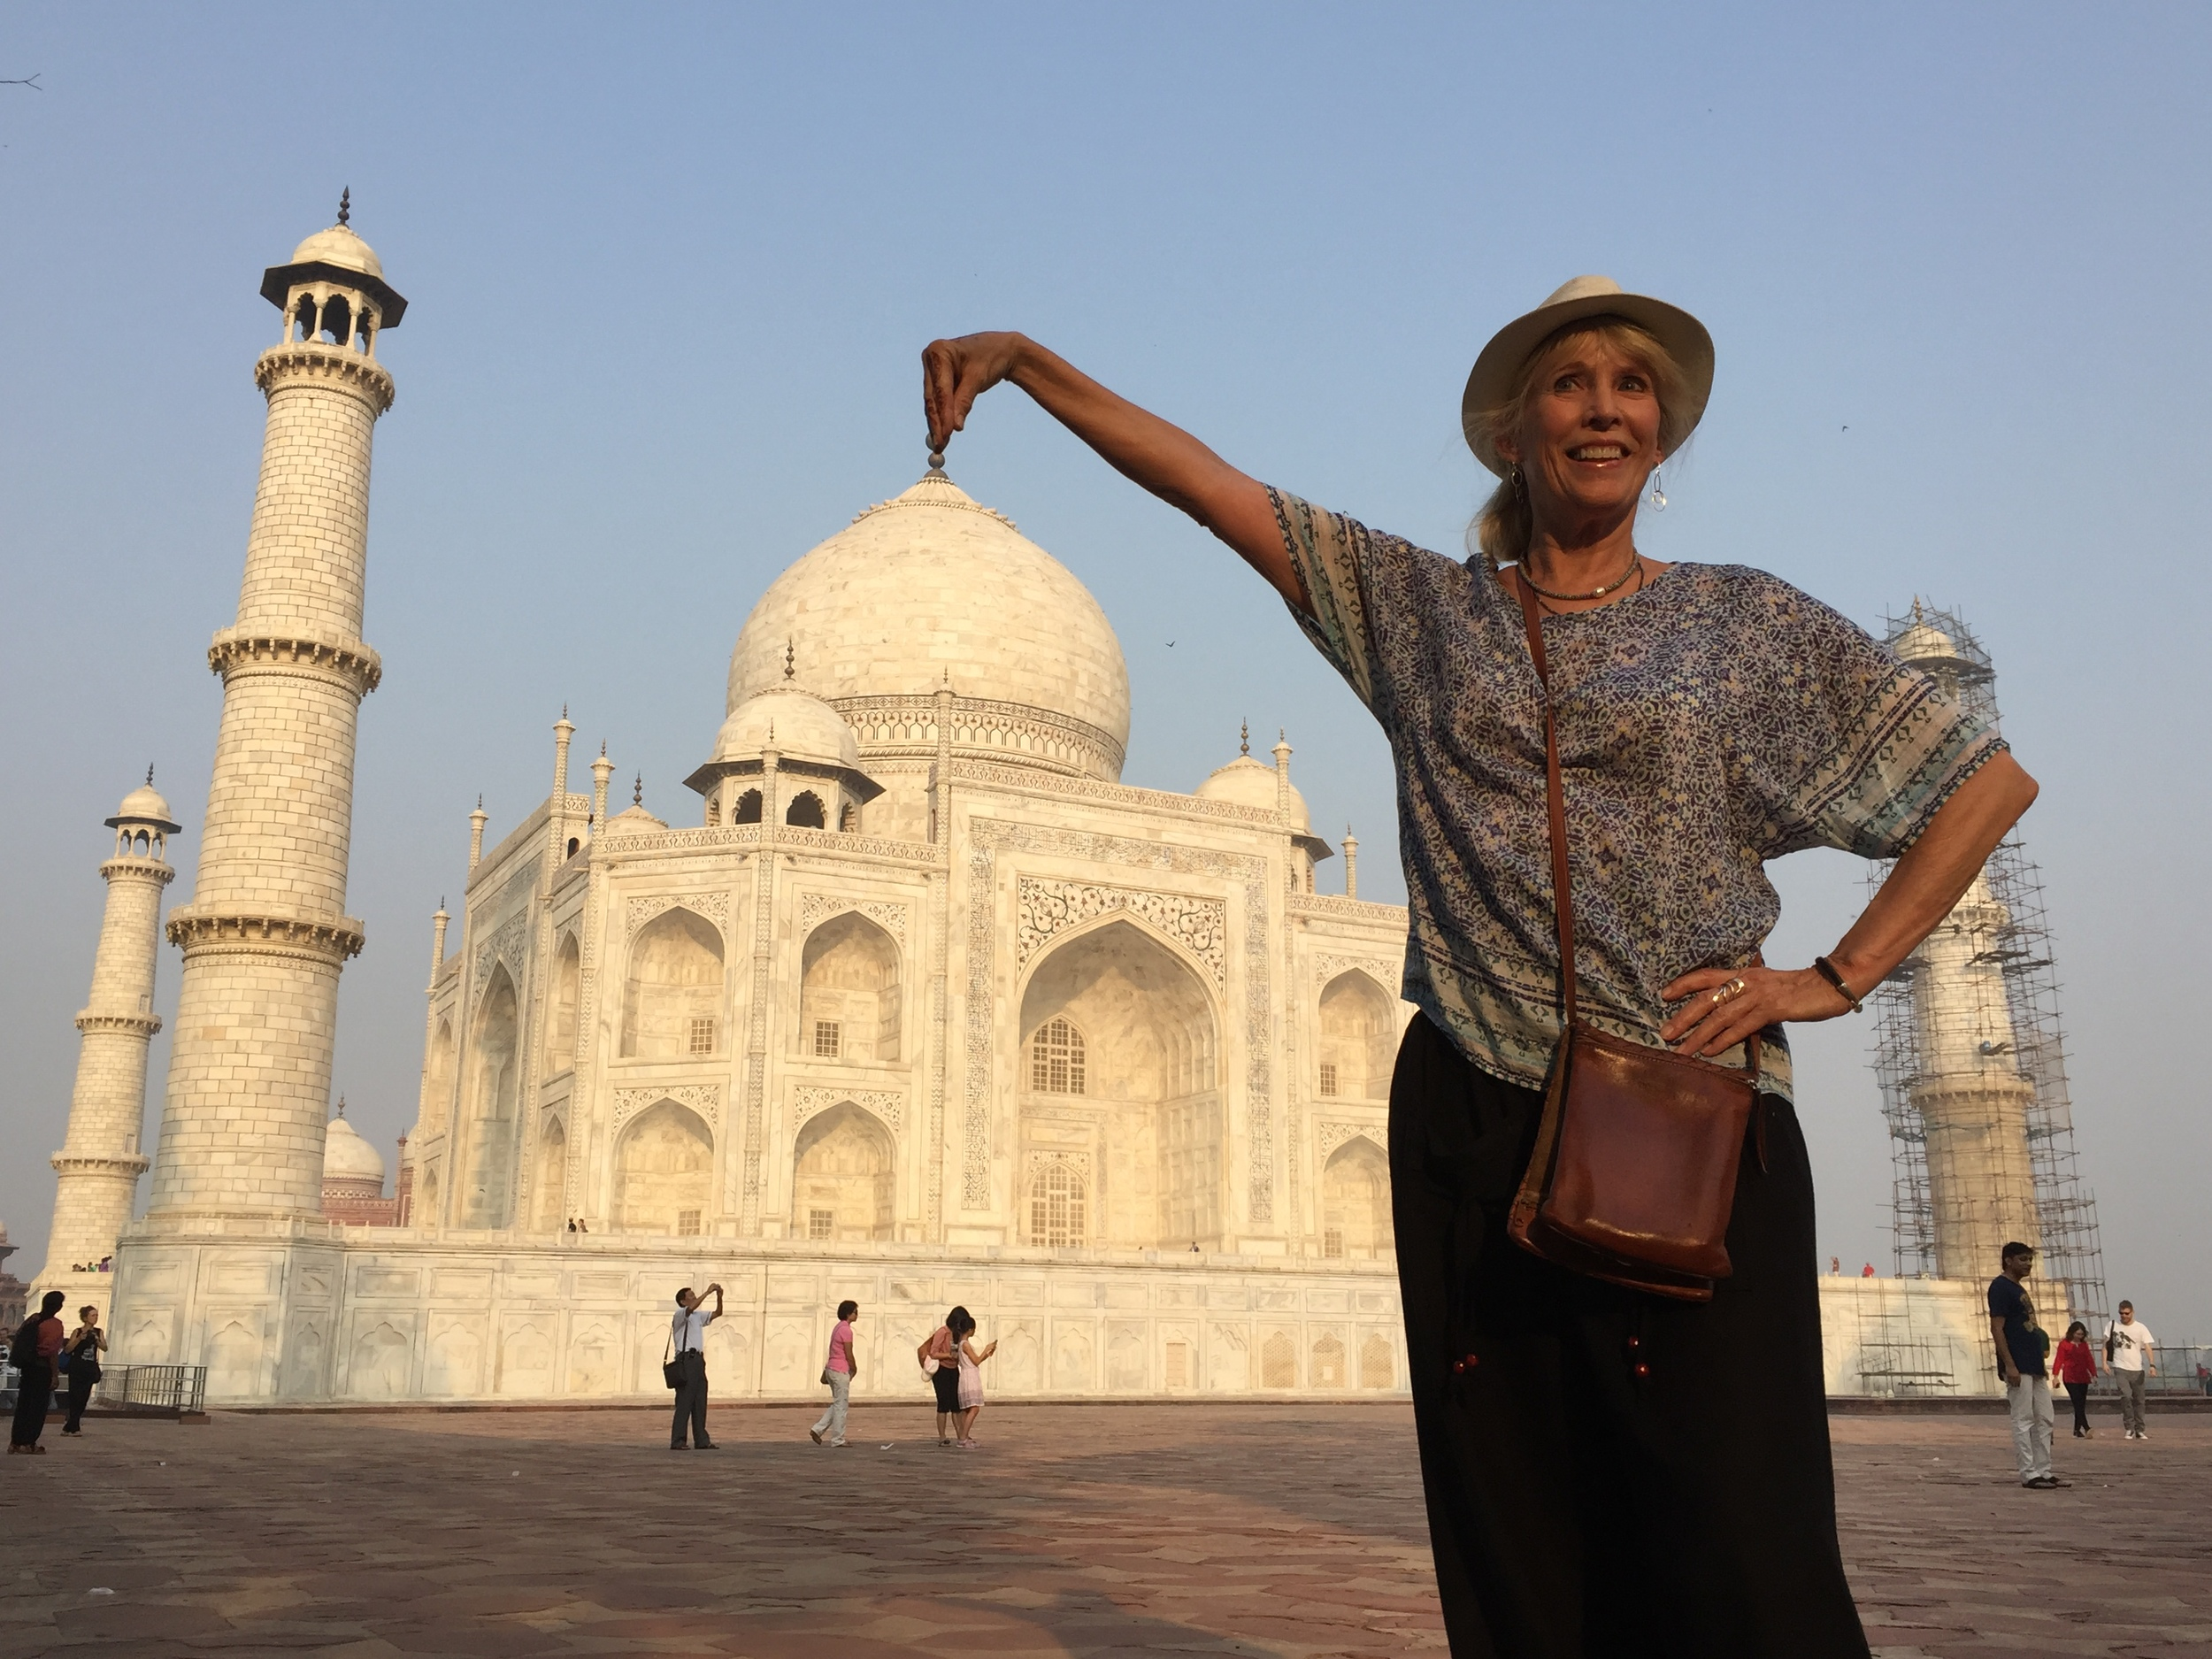 Me in my obligatory trick photo at the Taj Majal.